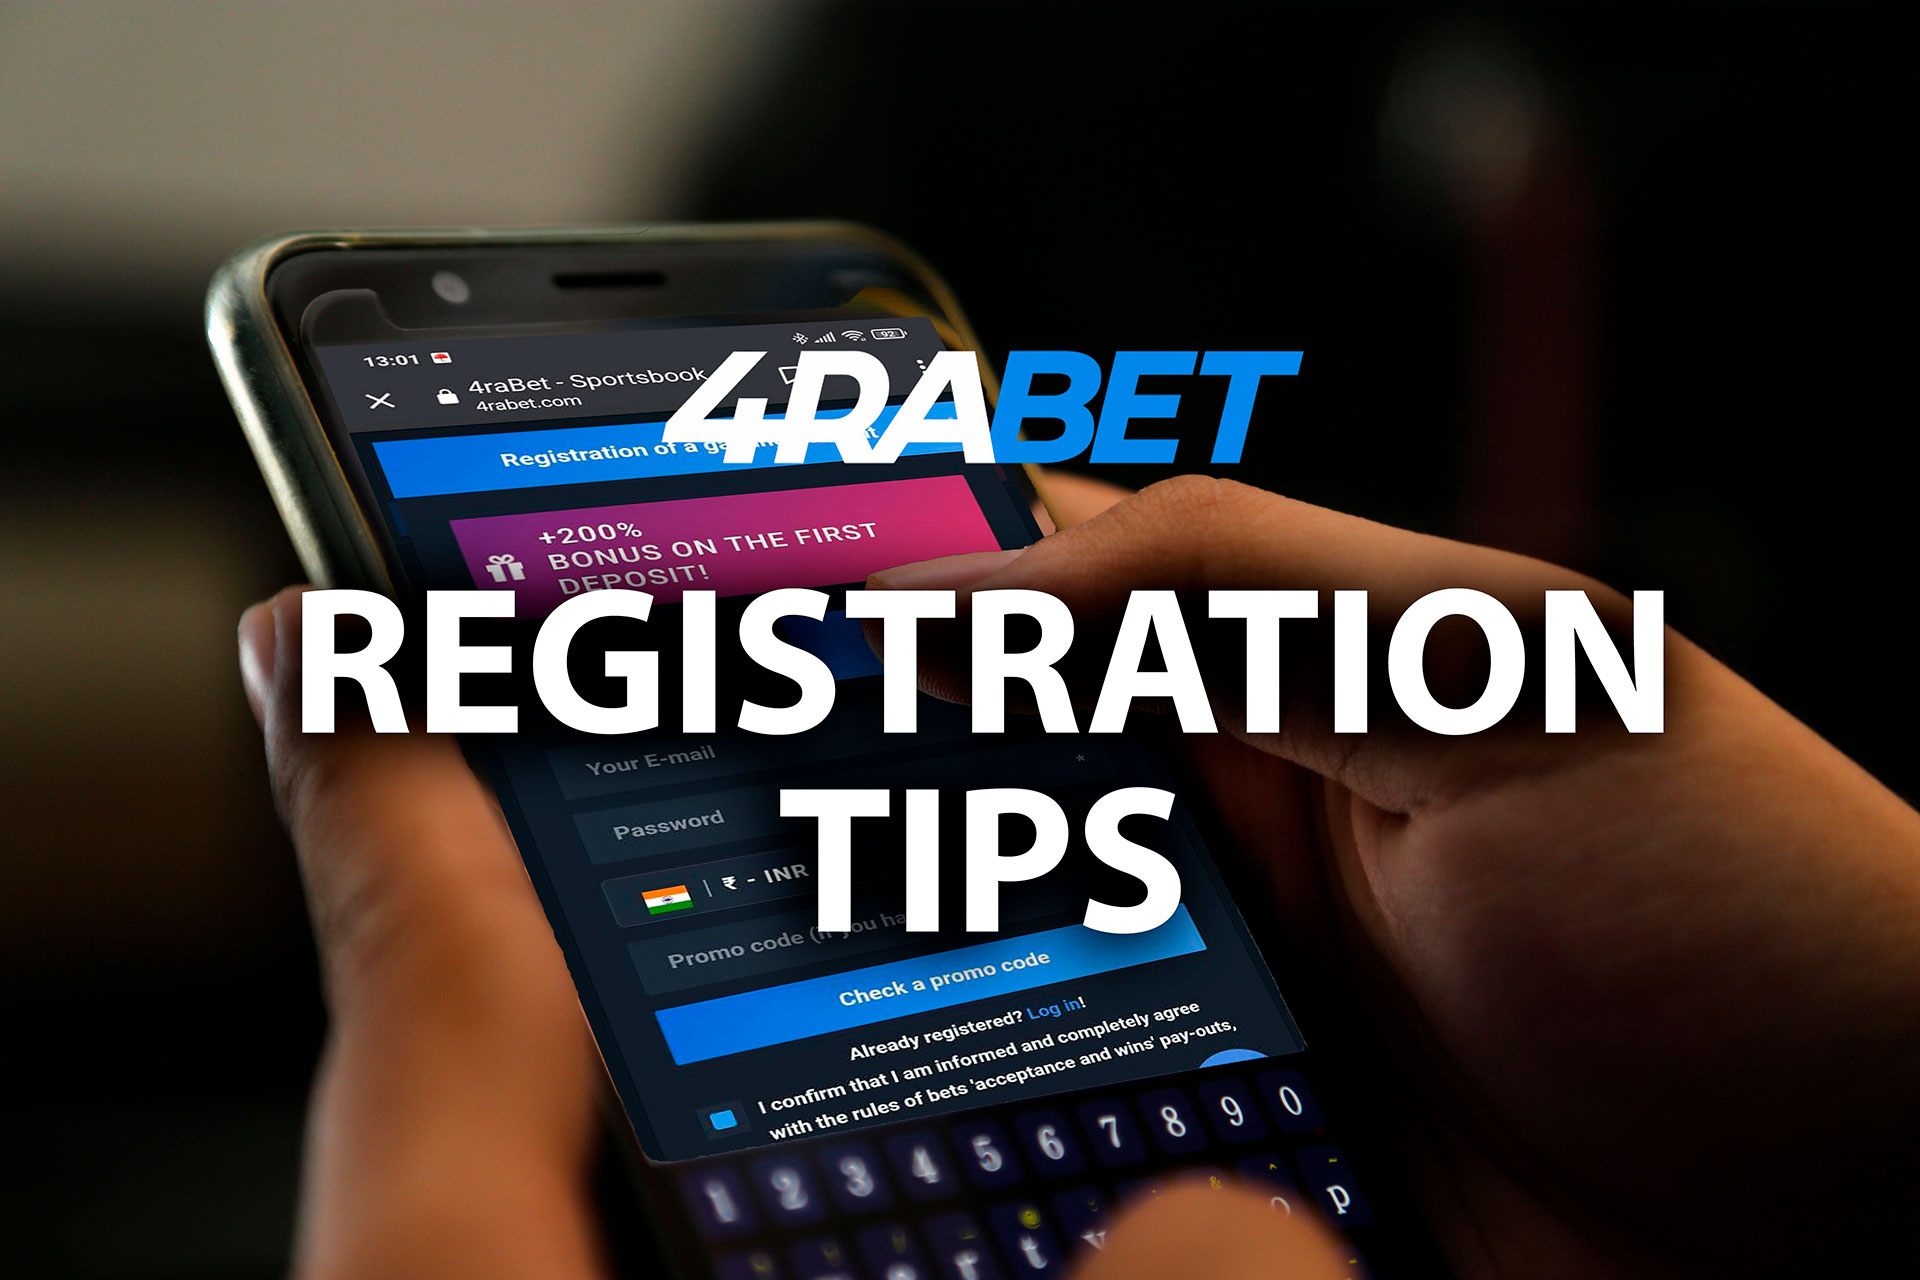 Follow our tips and you will create your account without any problems.